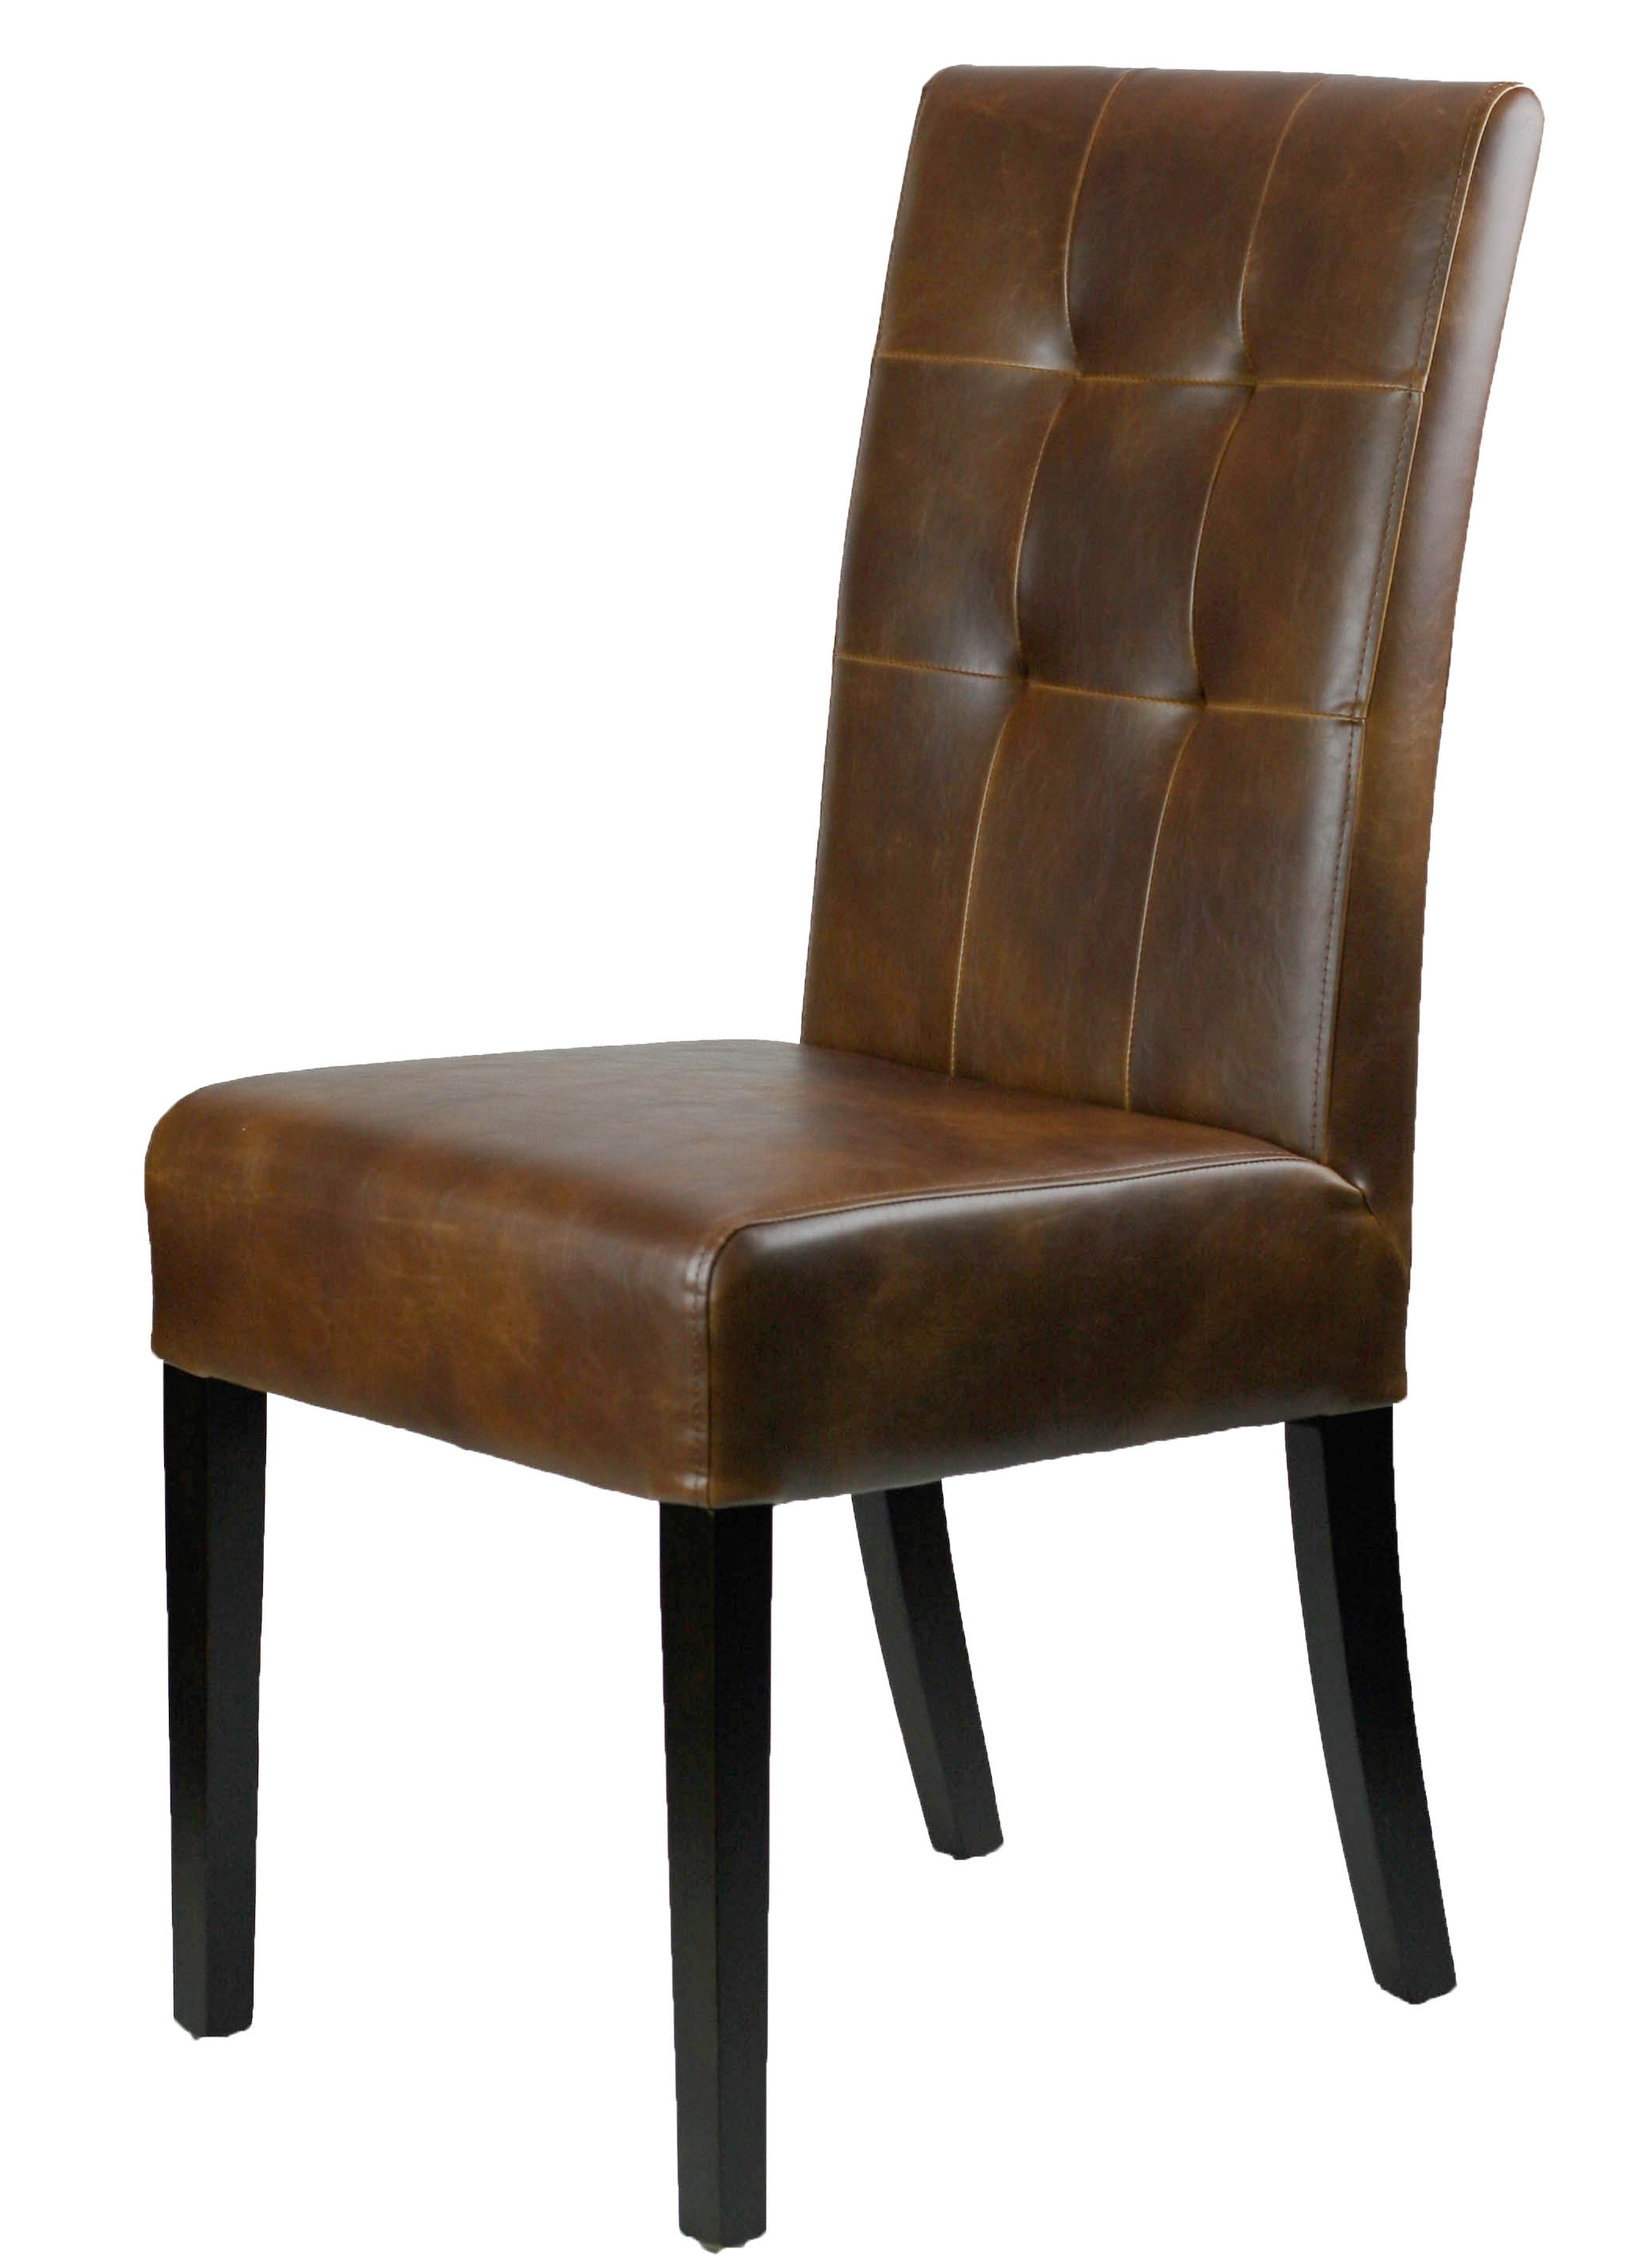 Leather Parson, Dining Room & Kitchen Chairs :: On Sale! Distress Regarding Most Up To Date Brown Leather Dining Chairs (View 11 of 25)